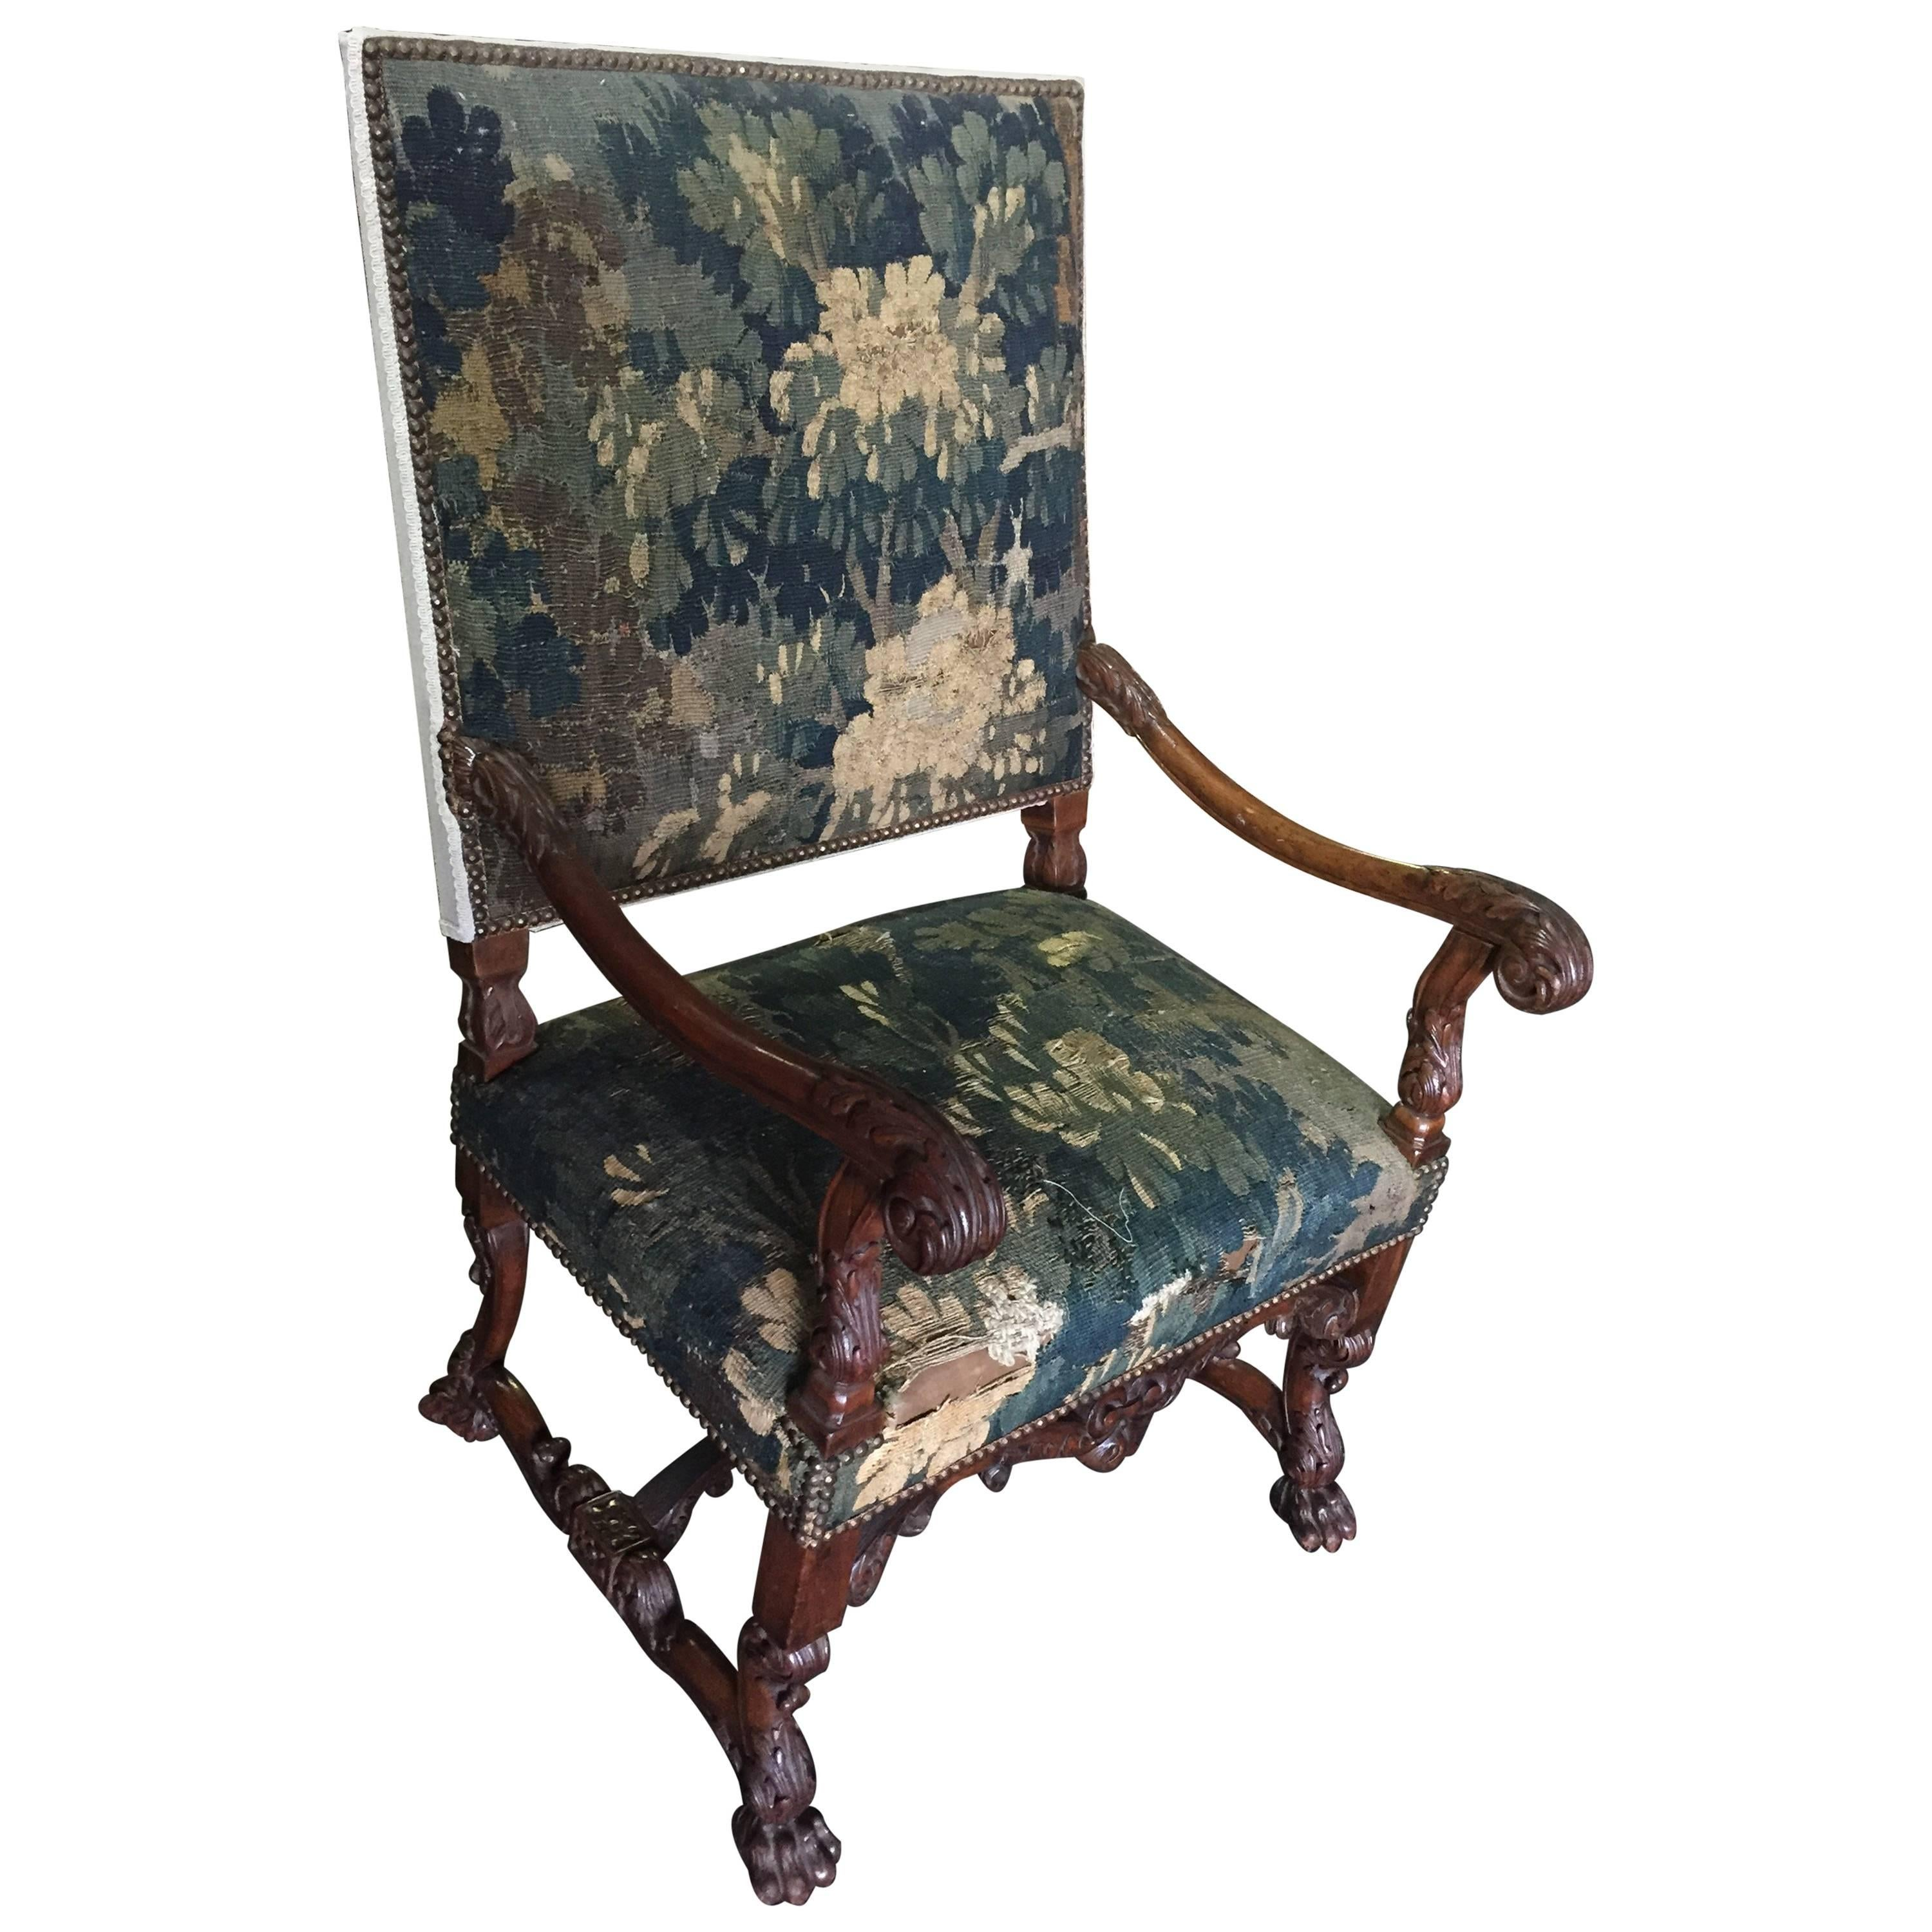 Wonderful 19c Louis XIII Style Armchair With Aubusson Tapestry